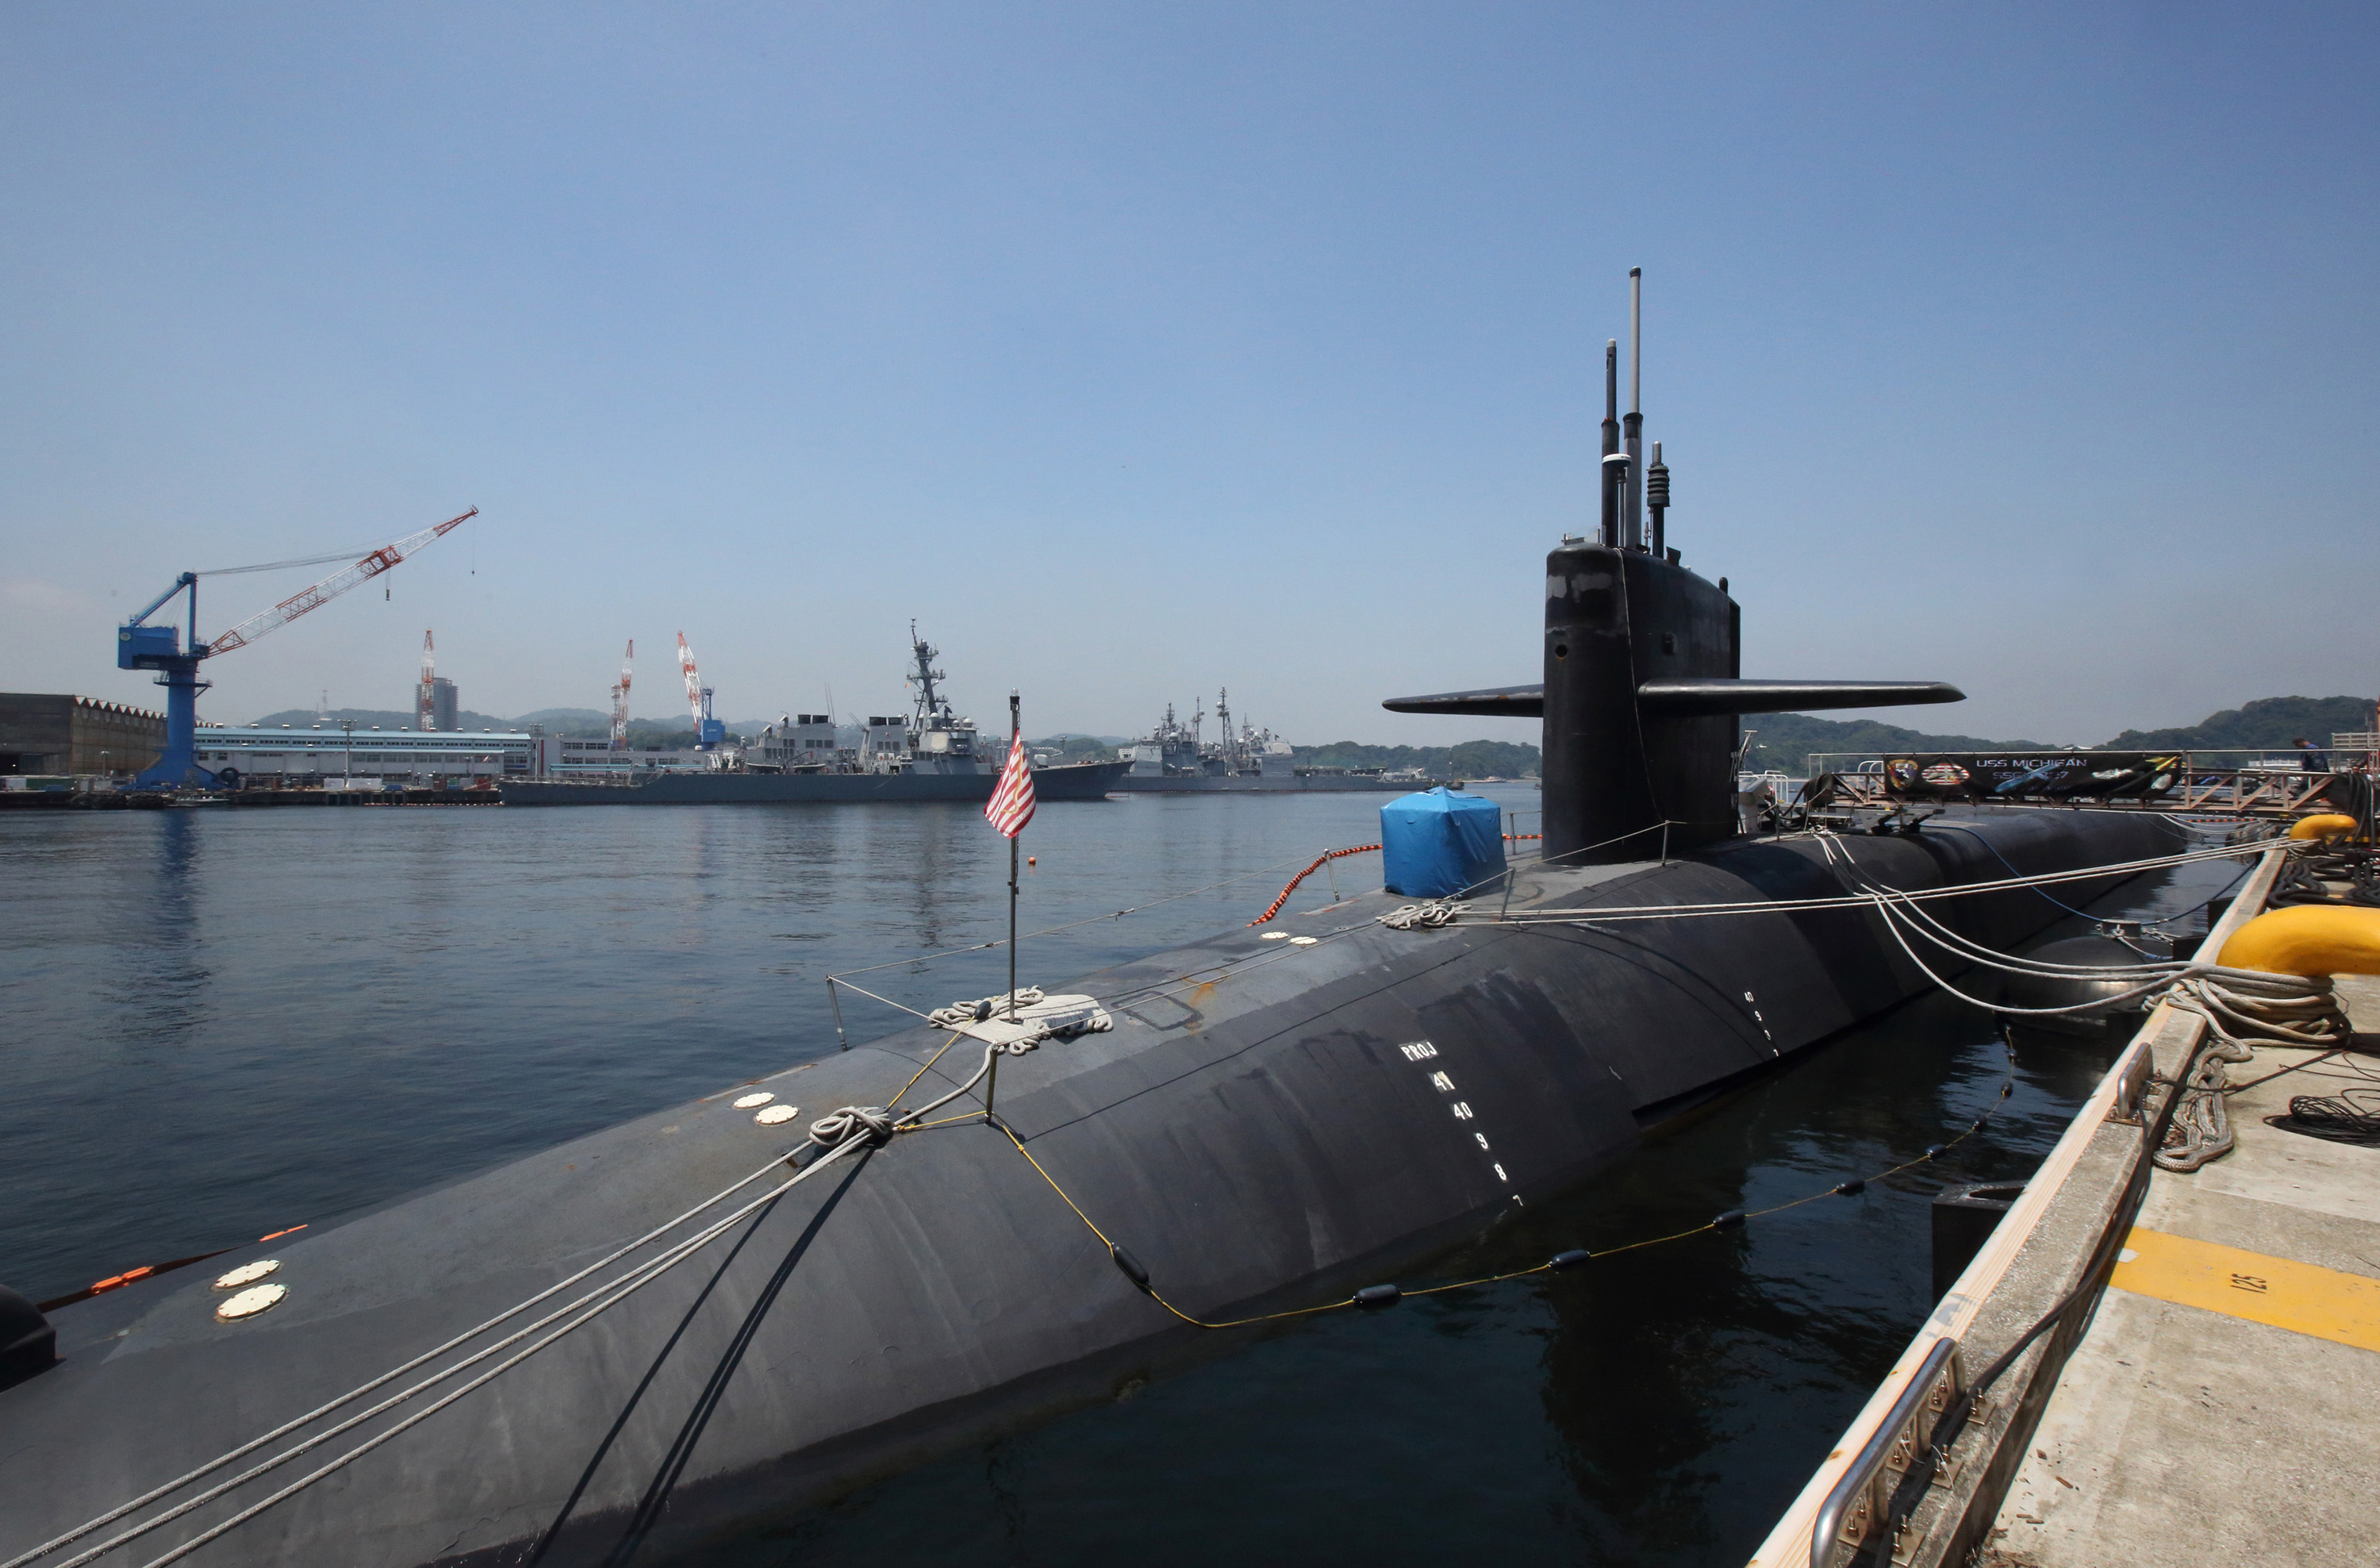 The nuclear-powered submarine USS Michigan is docked at the Yokosuka Naval Base in Kanagawa Prefecture on July 10. | BLOOMBERG